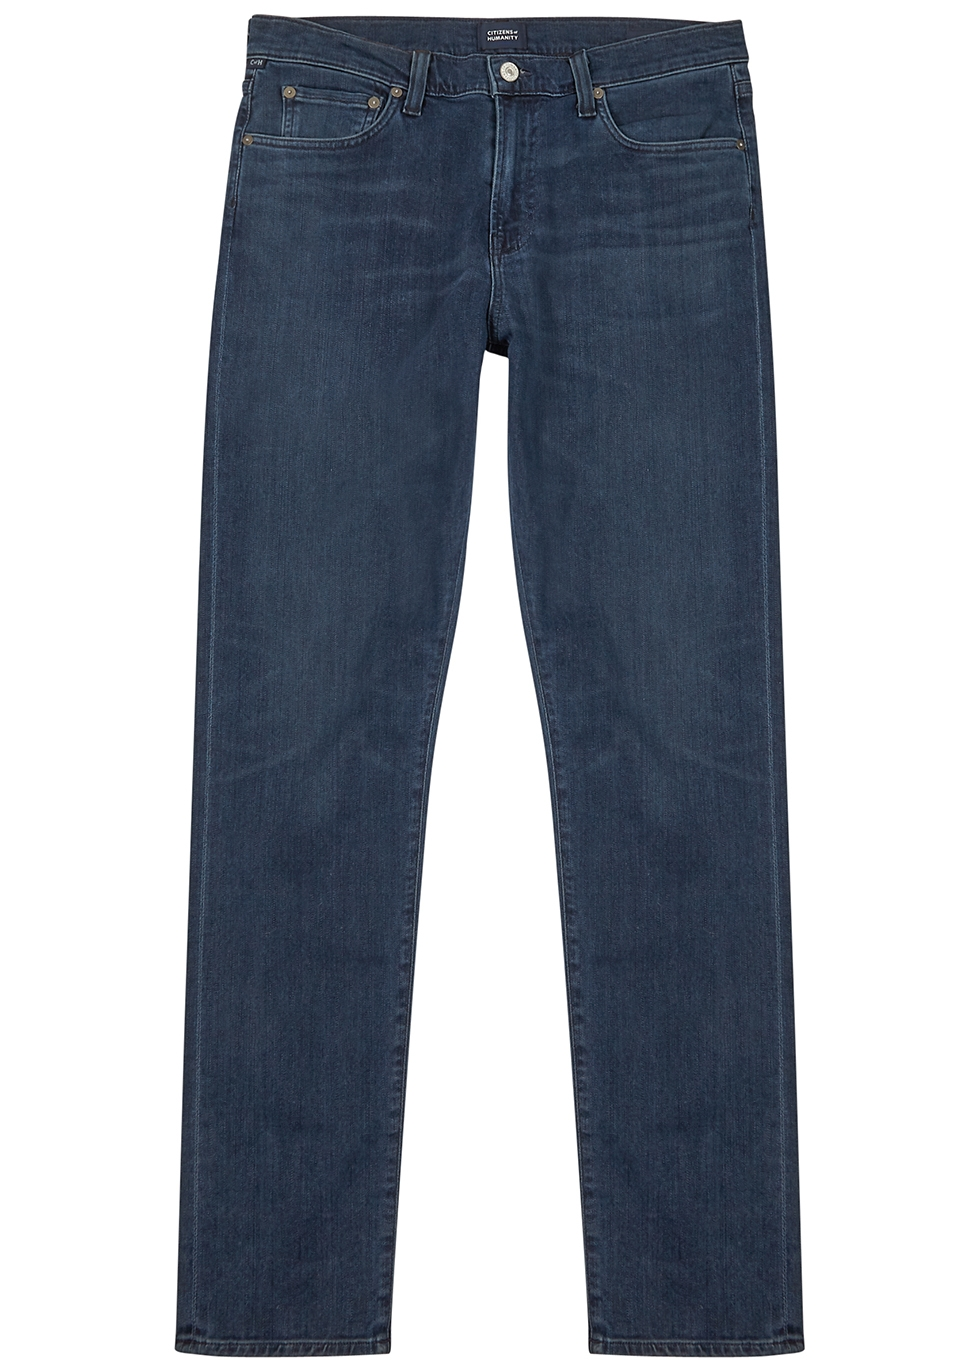 London dark blue slim-leg jeans